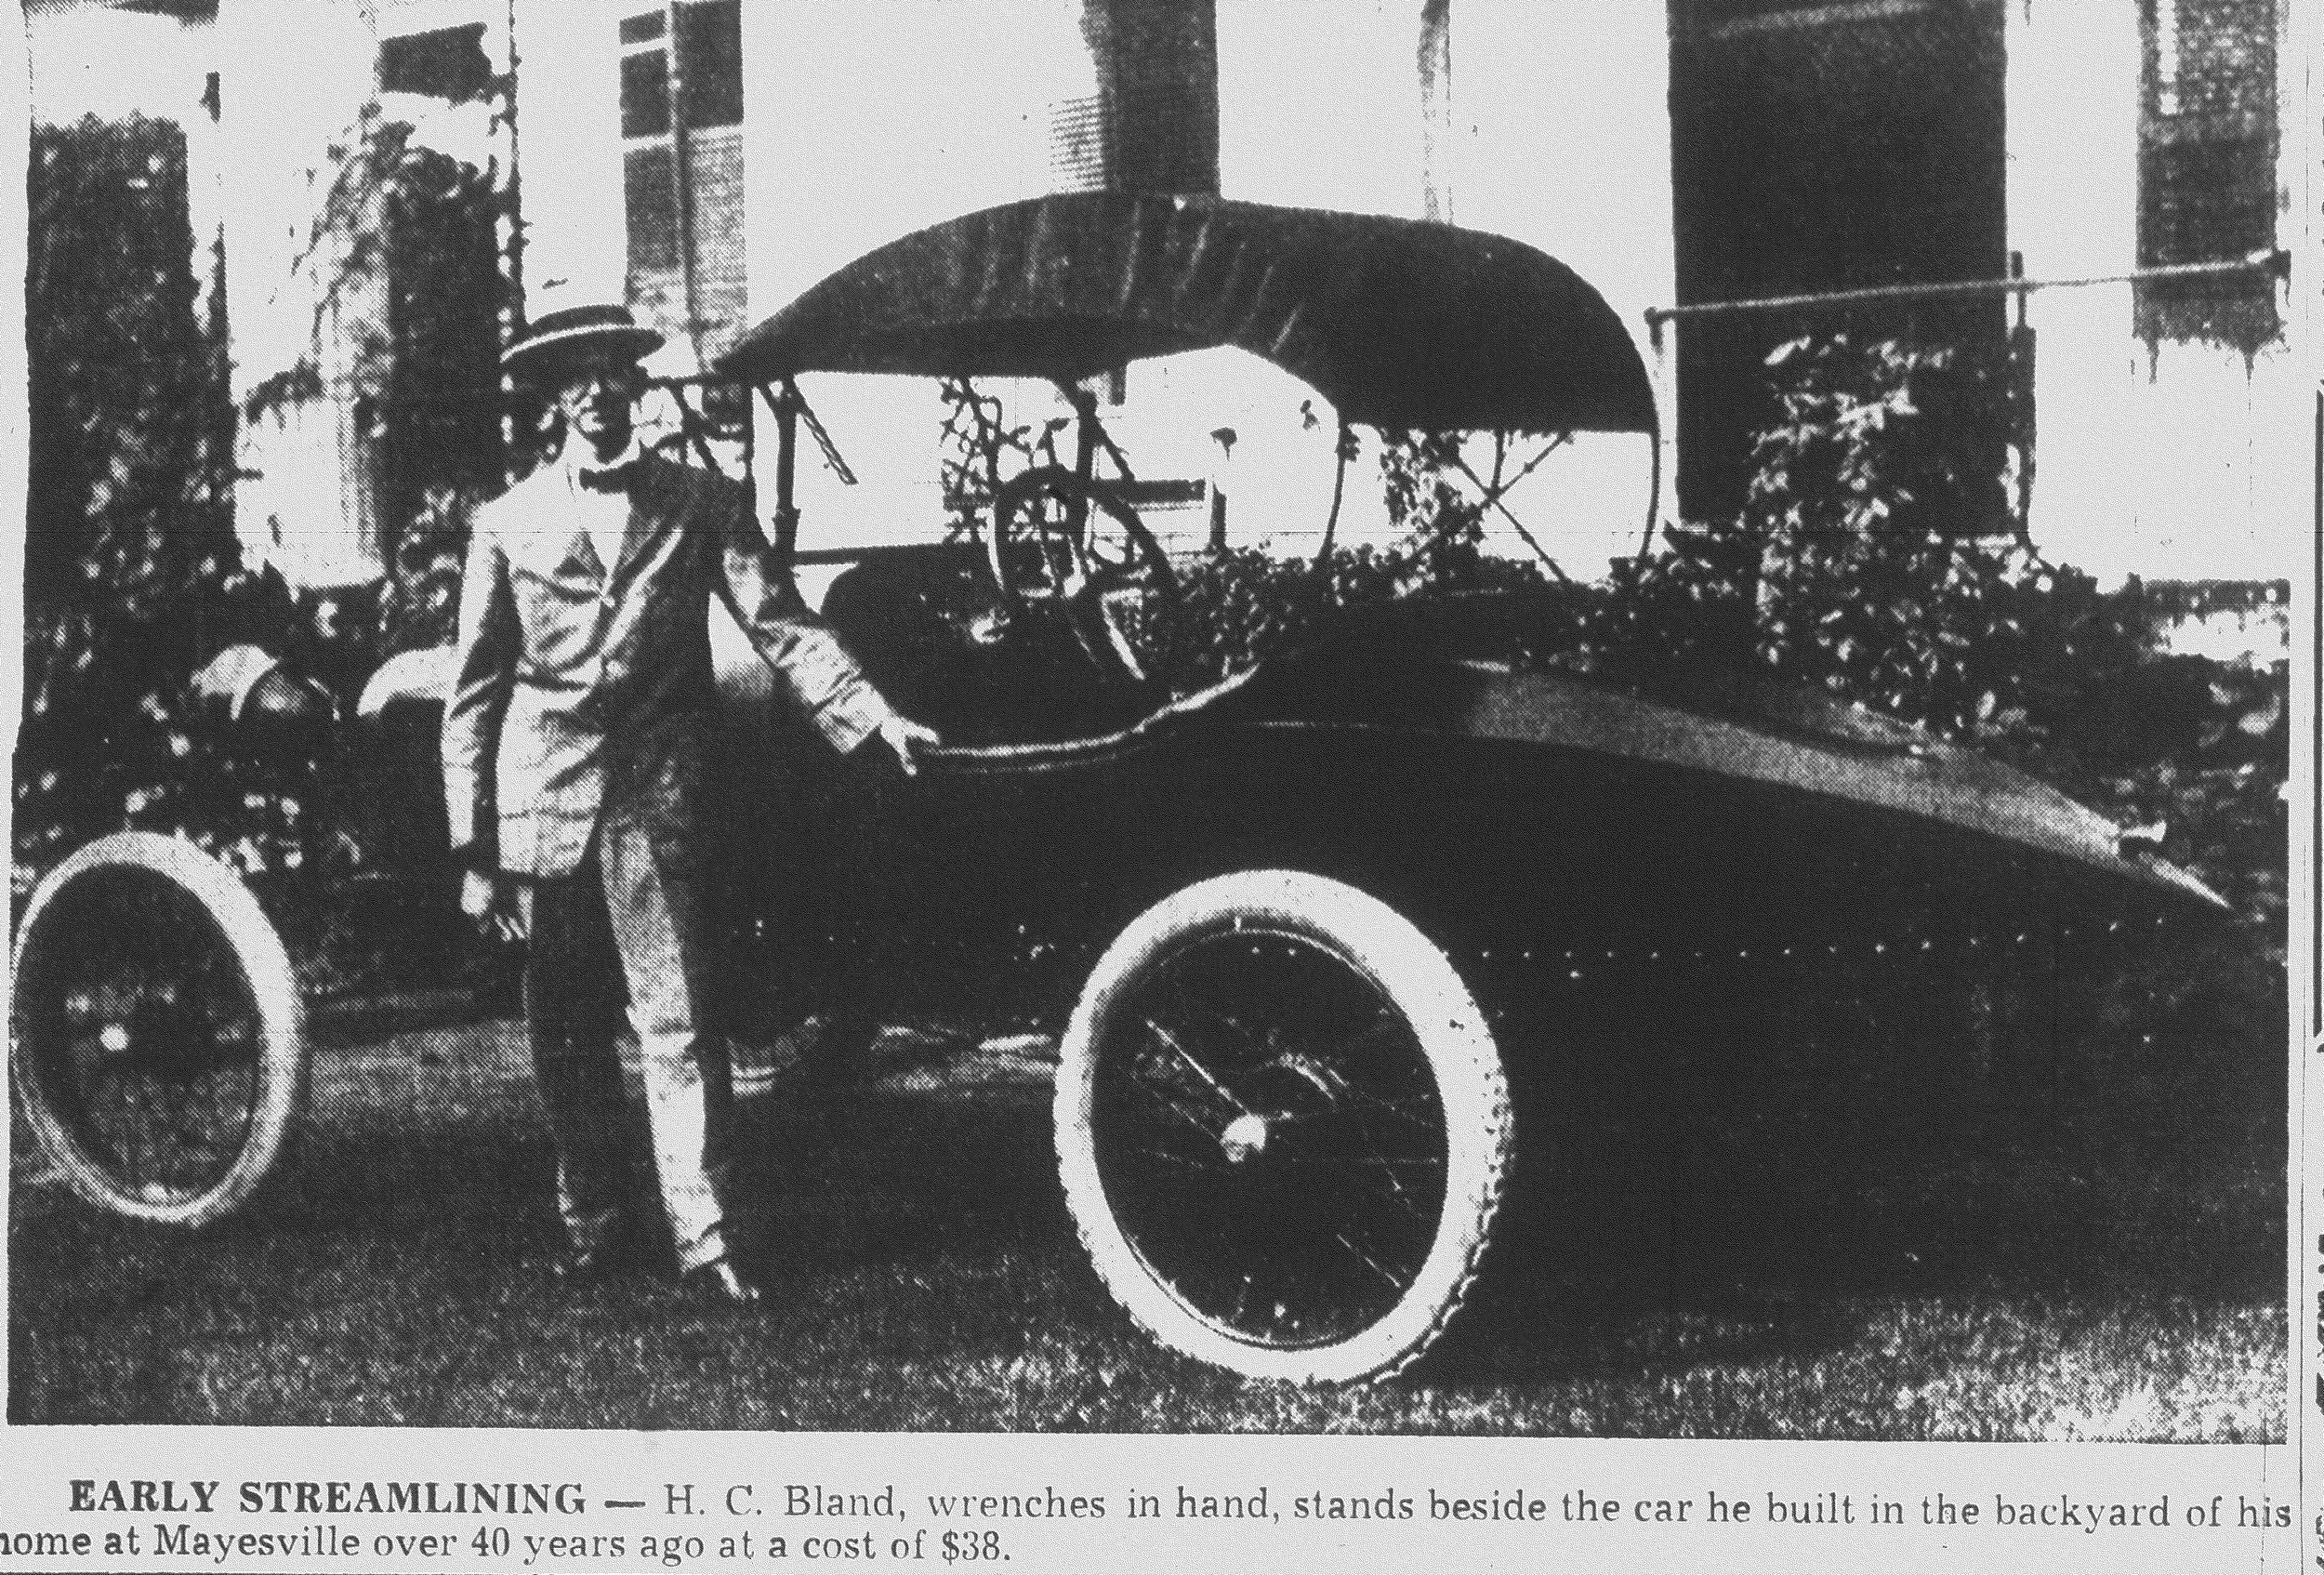 H.C. Bland, wrenches in hand, stands beside the car he built in the backyard of his home in Mayesville at a cost of $38.